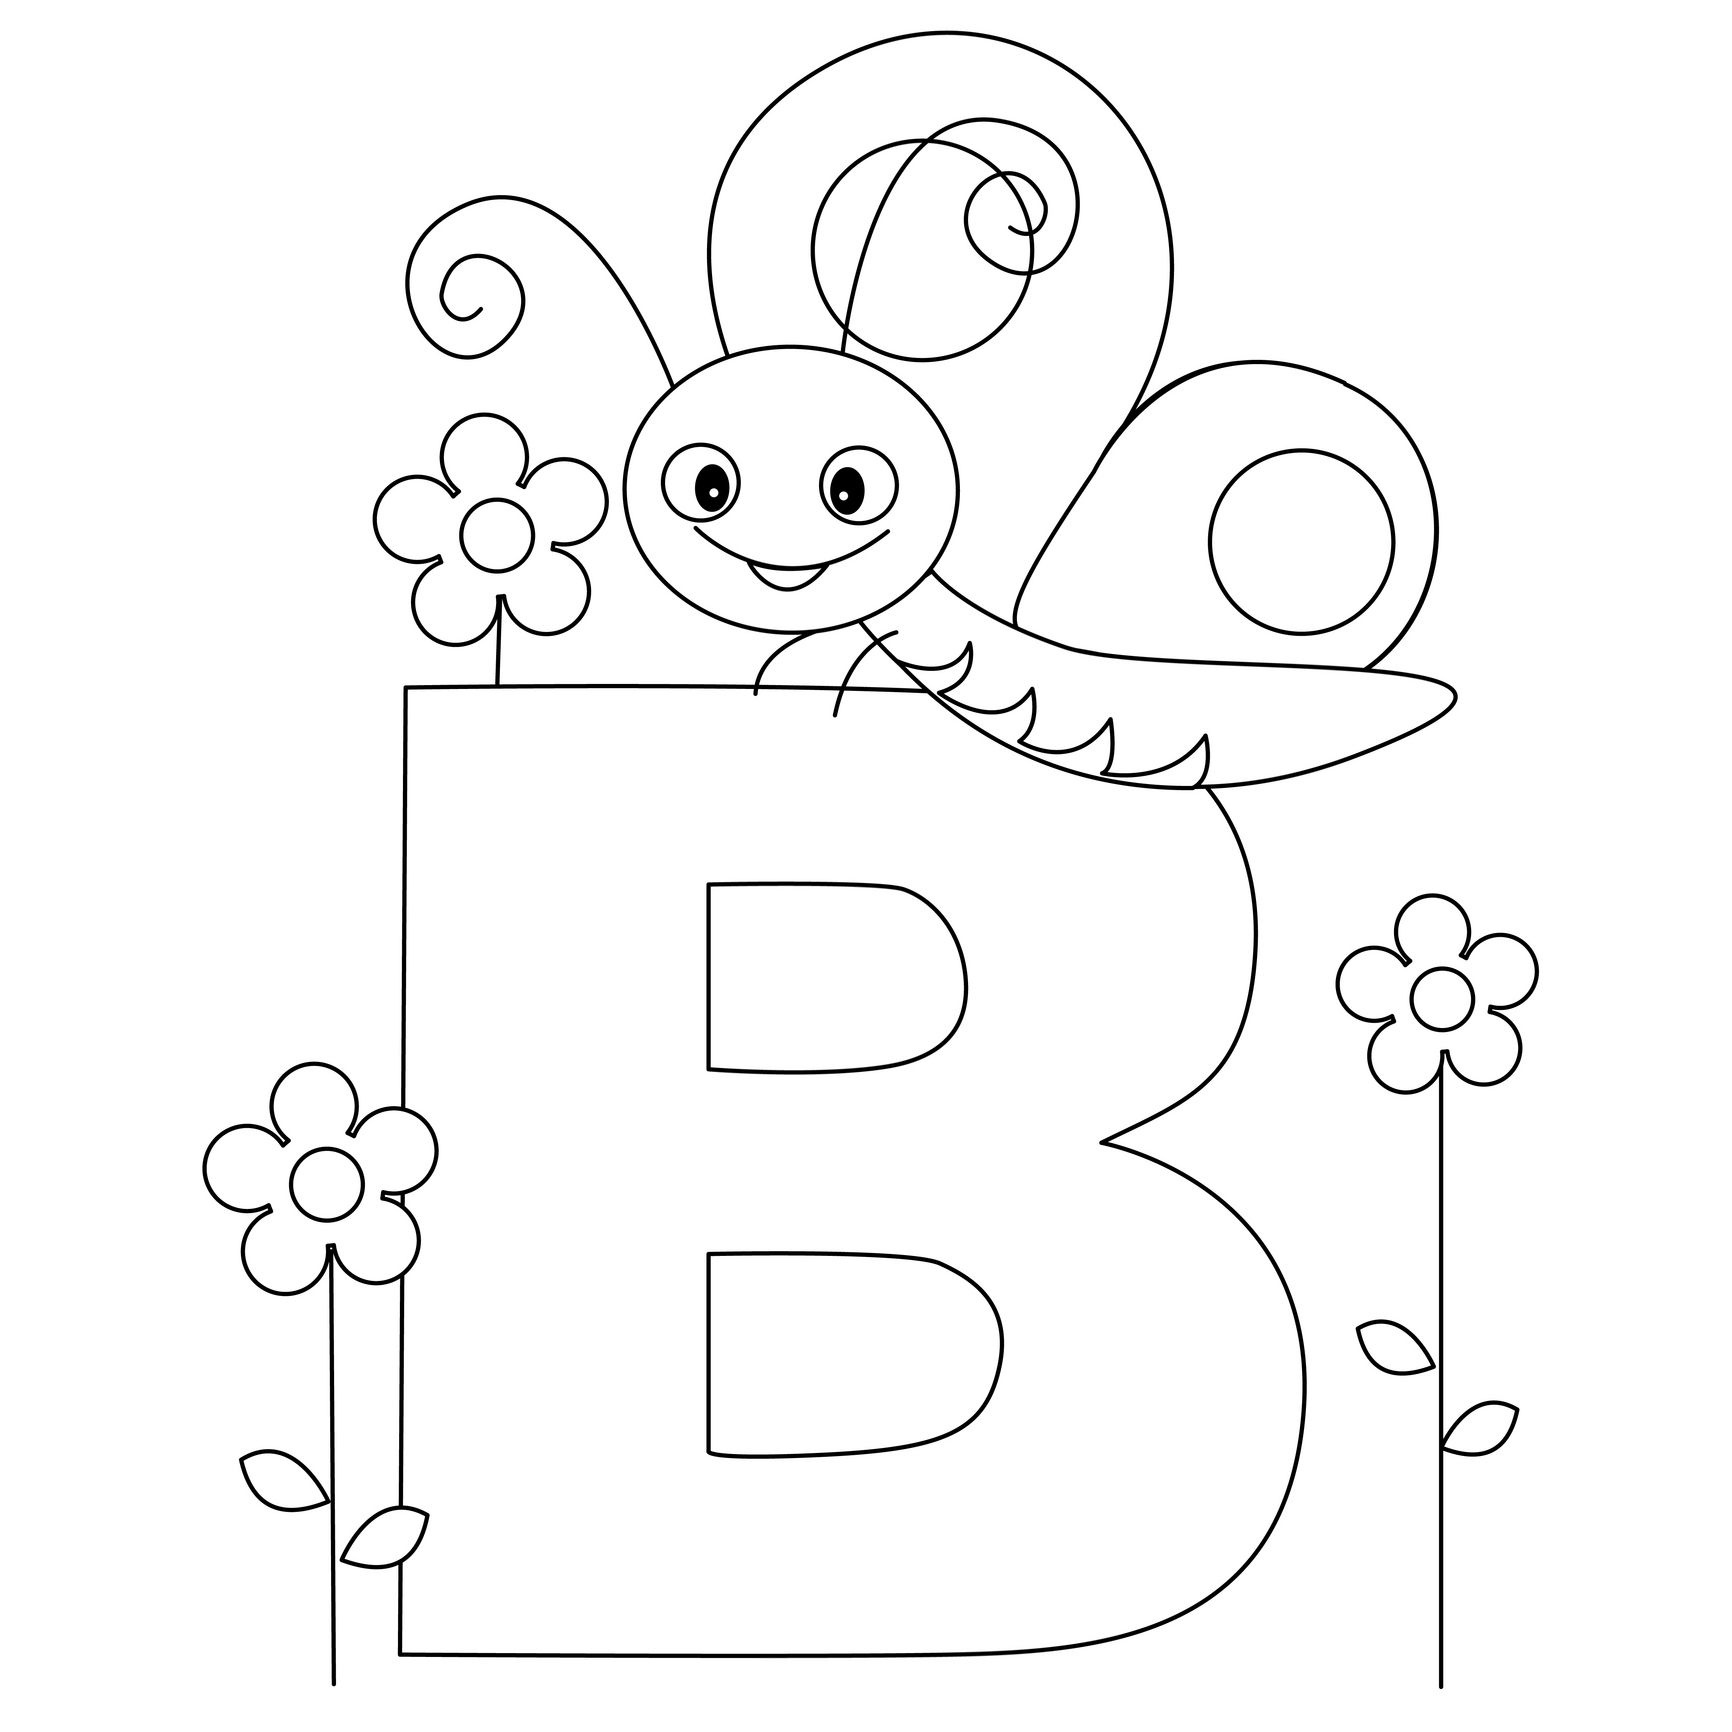 Animal Alphabet Letter B Is For Butterfly! Here's A Simple | Bugs - Free Printable Animal Alphabet Letters